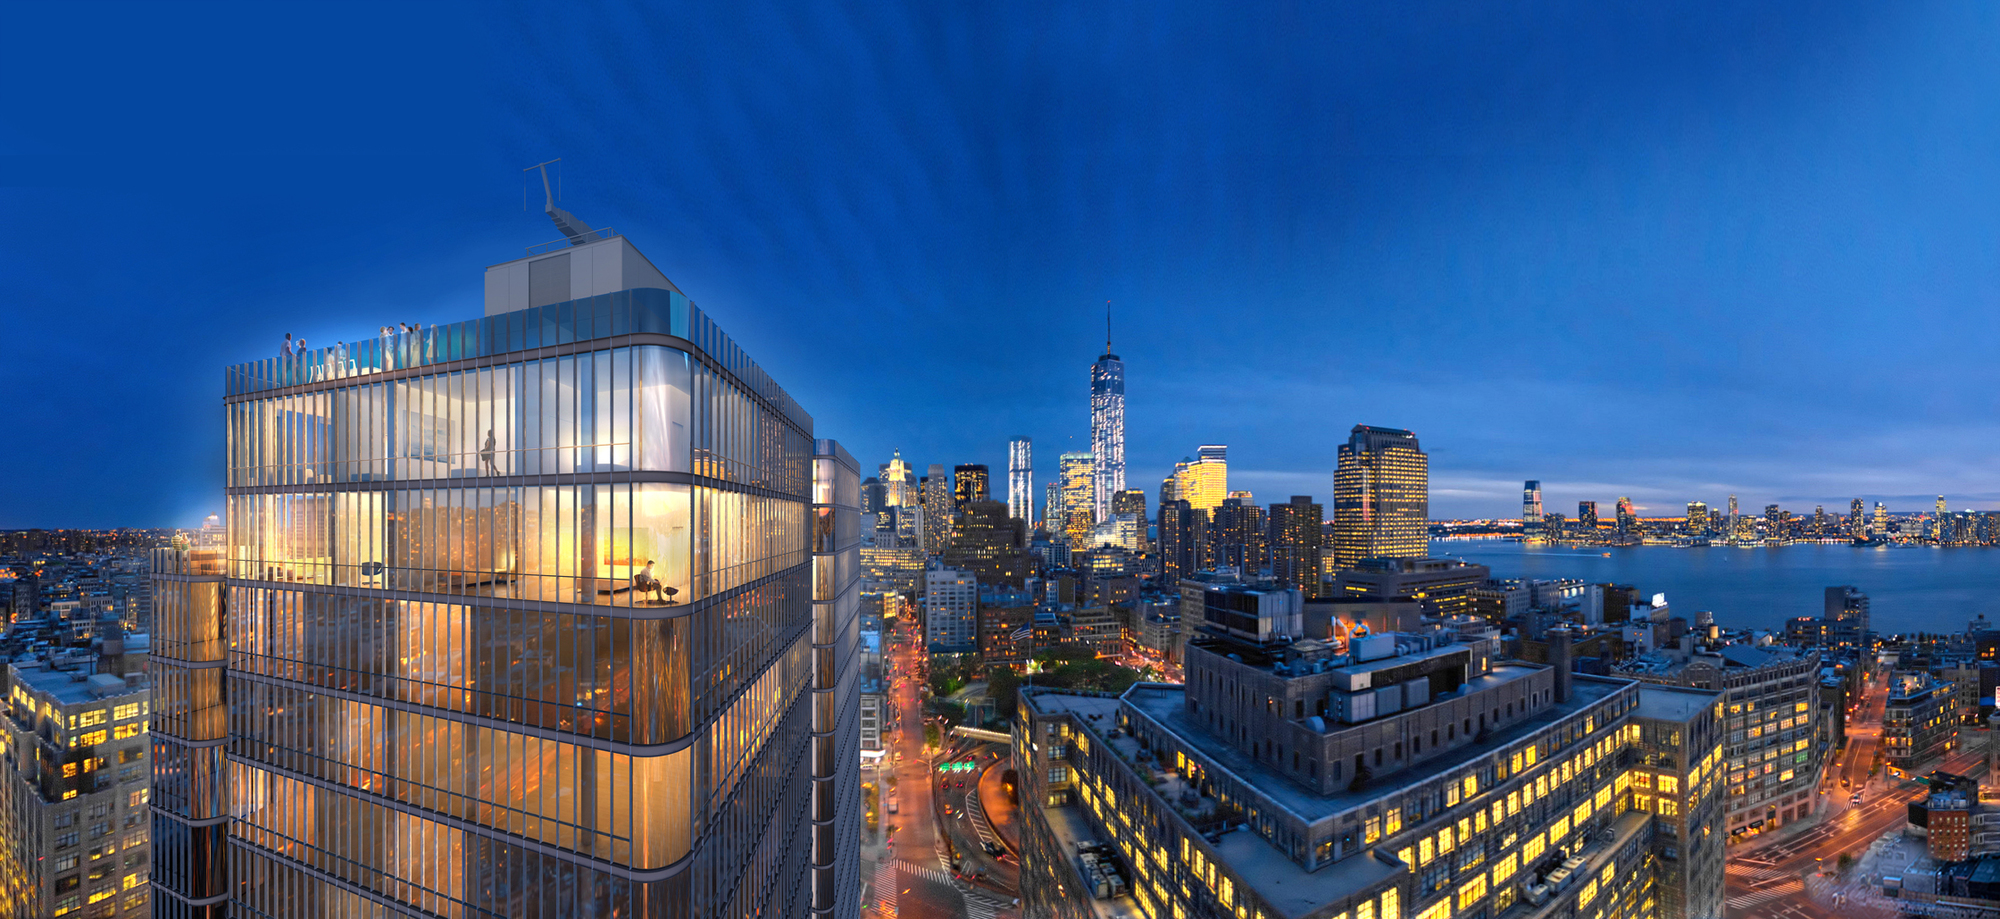 Renzo Piano Designs Glass Soho Tower for New York  ArchDaily